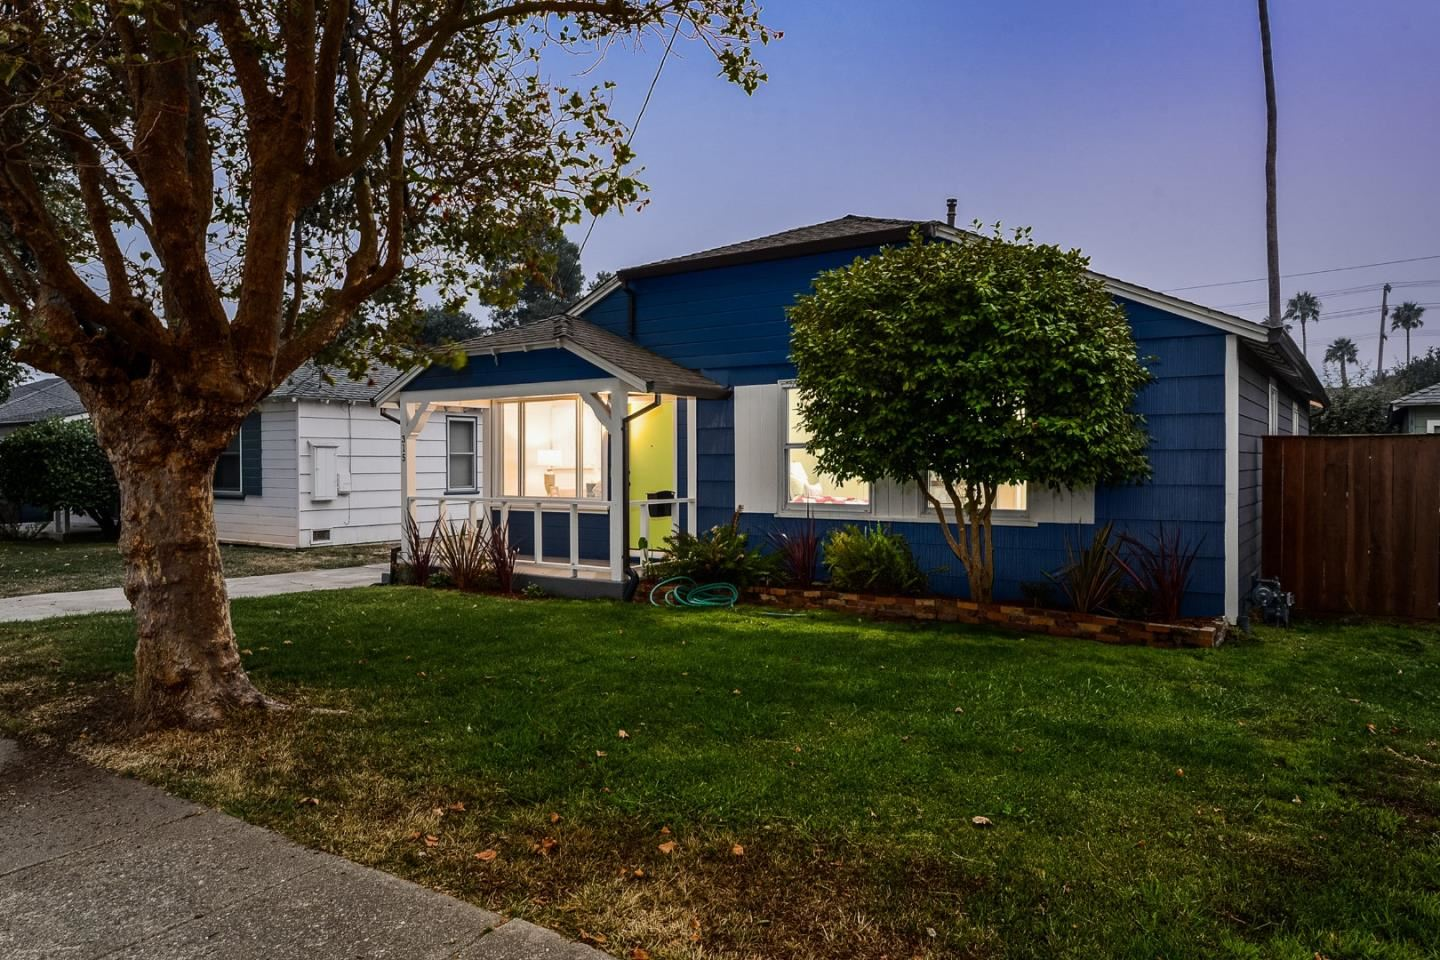 Photo for 315 Aviador AVE, MILLBRAE, CA 94030 (MLS # ML81810411)